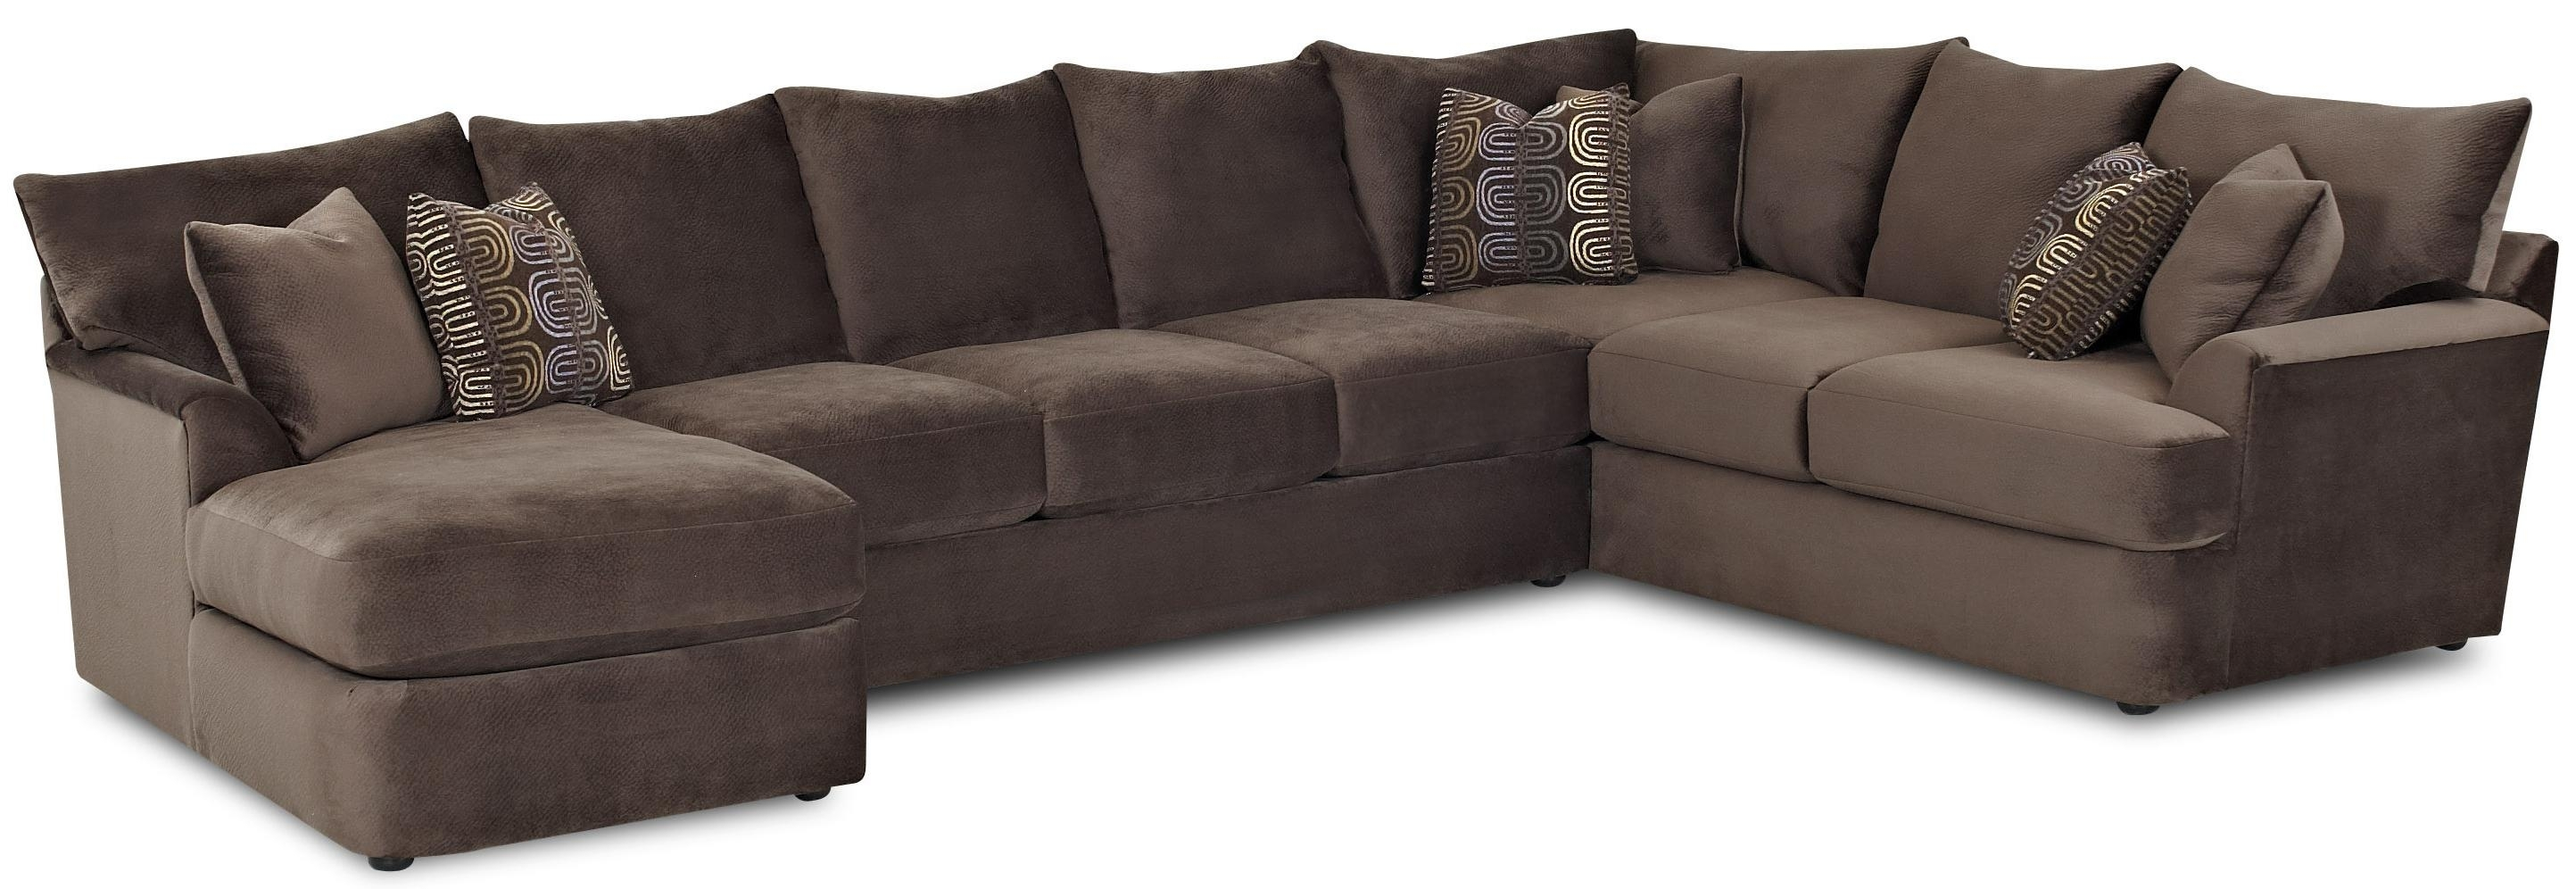 L Shaped Sectional Sofa With Left Chaiseklaussner Wolf And Throughout L Shaped Sectional Sofas (View 3 of 10)